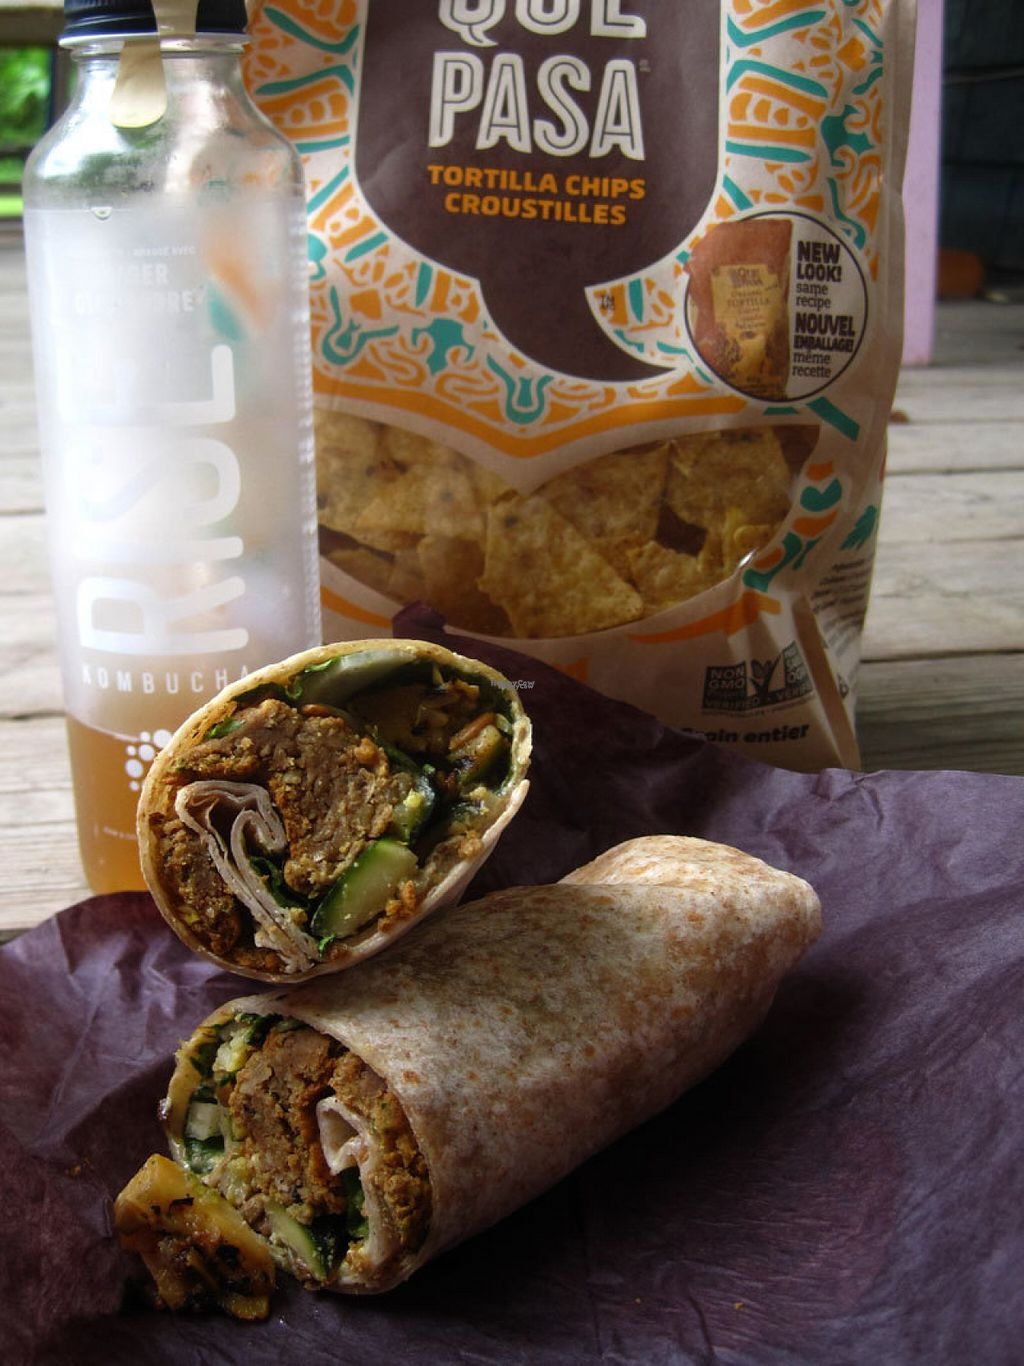 "Photo of Amarante Epicerie Ecologique  by <a href=""/members/profile/Babette"">Babette</a> <br/>Excellent falafel wrap filled with veggies, kombucha and tortilla chips <br/> August 21, 2016  - <a href='/contact/abuse/image/68486/170524'>Report</a>"